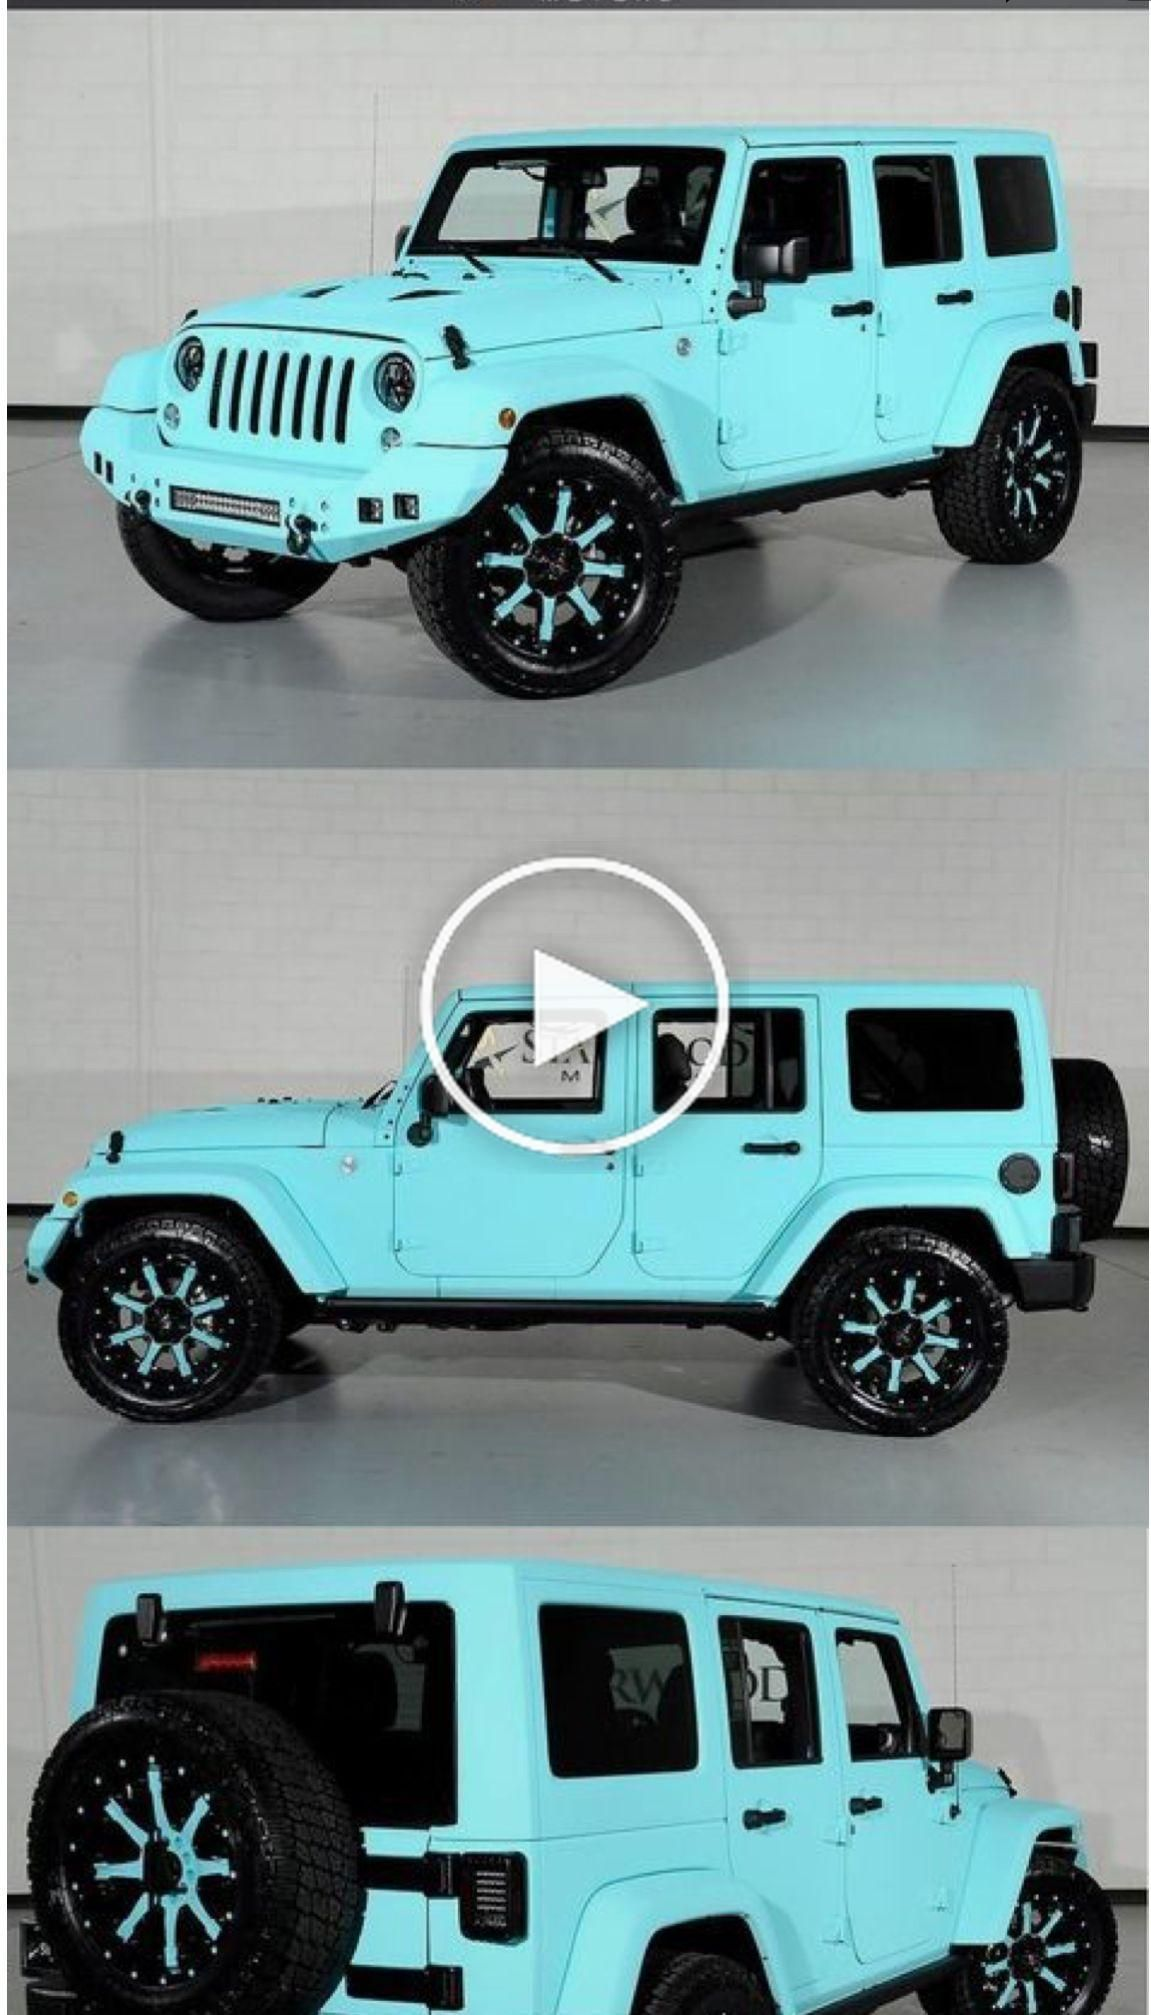 It Matches My Tiffany Blue 380 Lt 3 Garage Jeep Cars In 2020 Jeep Cars Blue Jeep Jeep